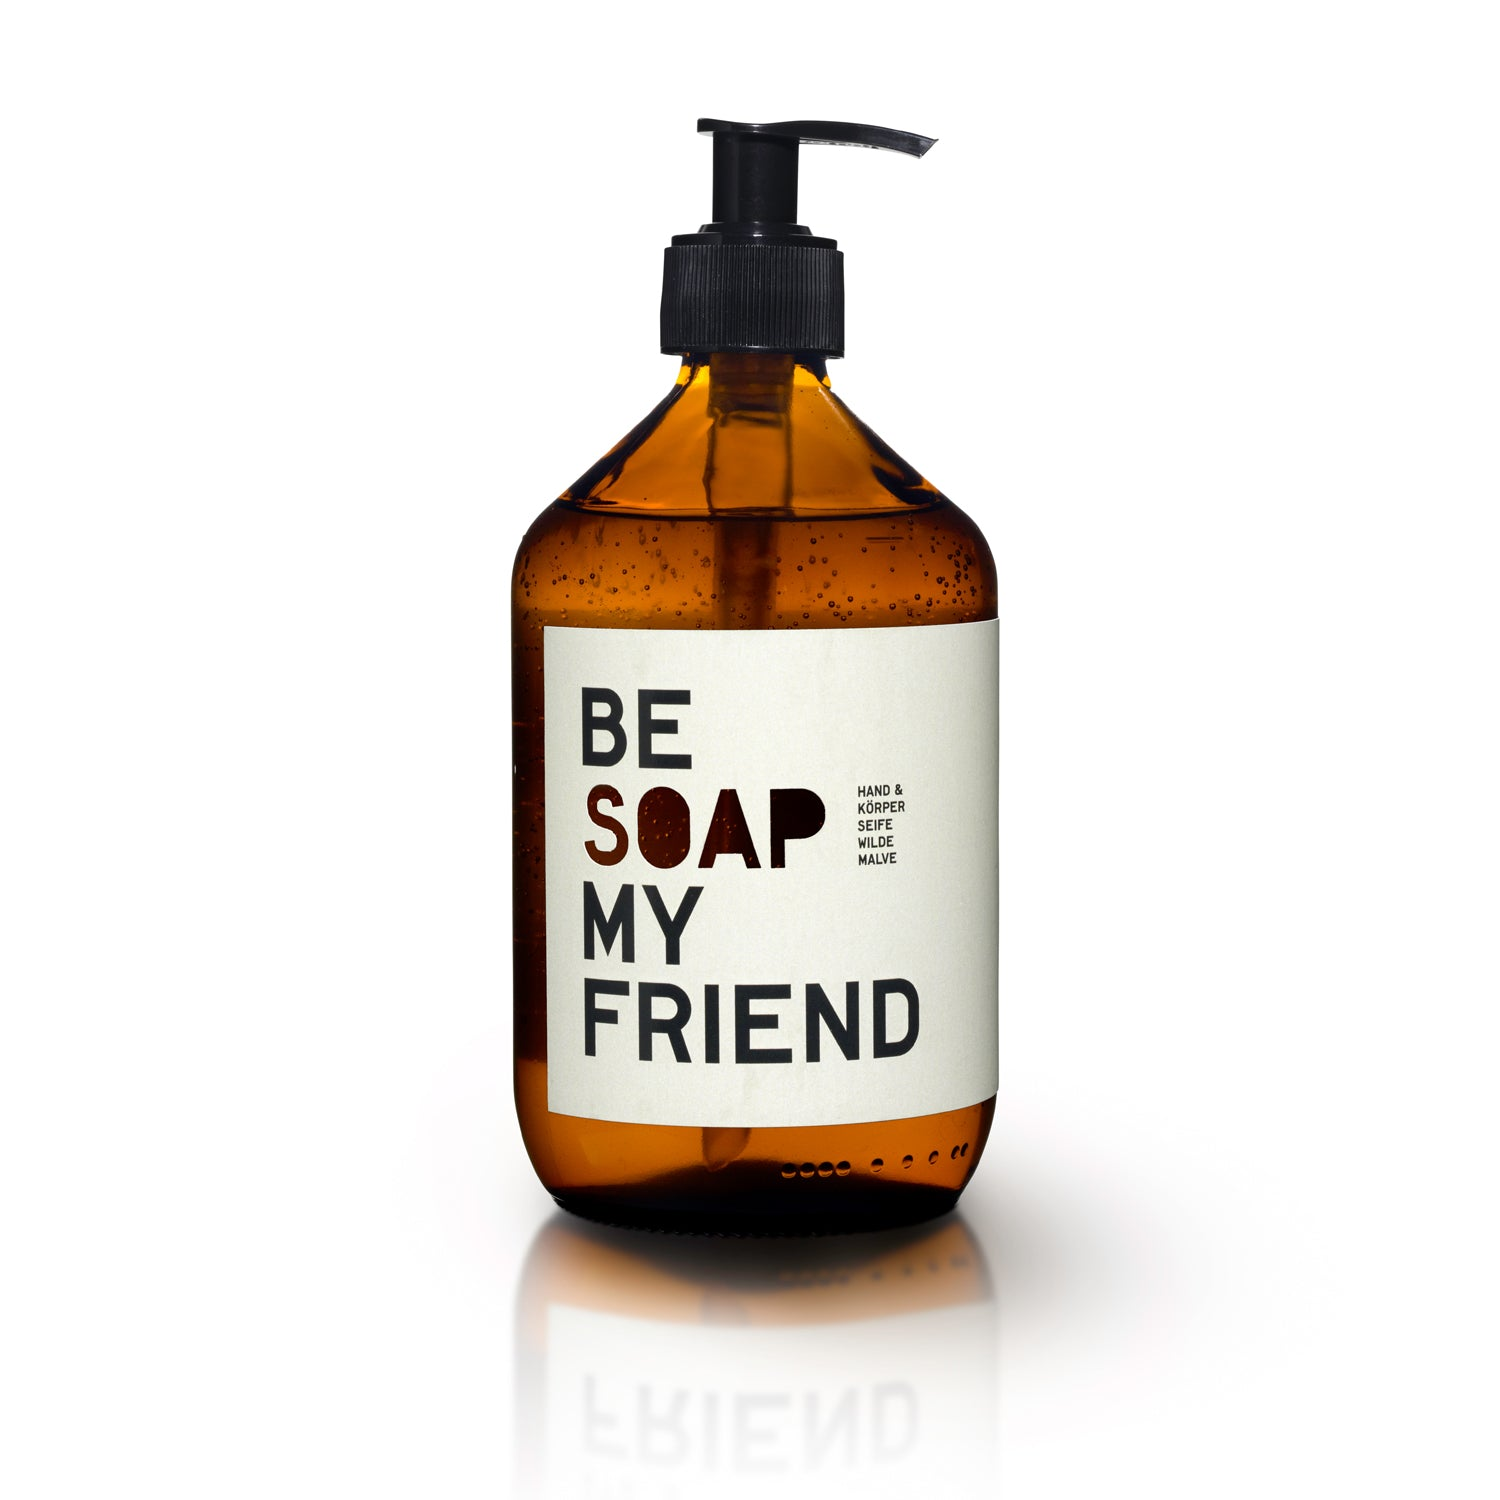 BE [ SOAP ] MY FRIEND